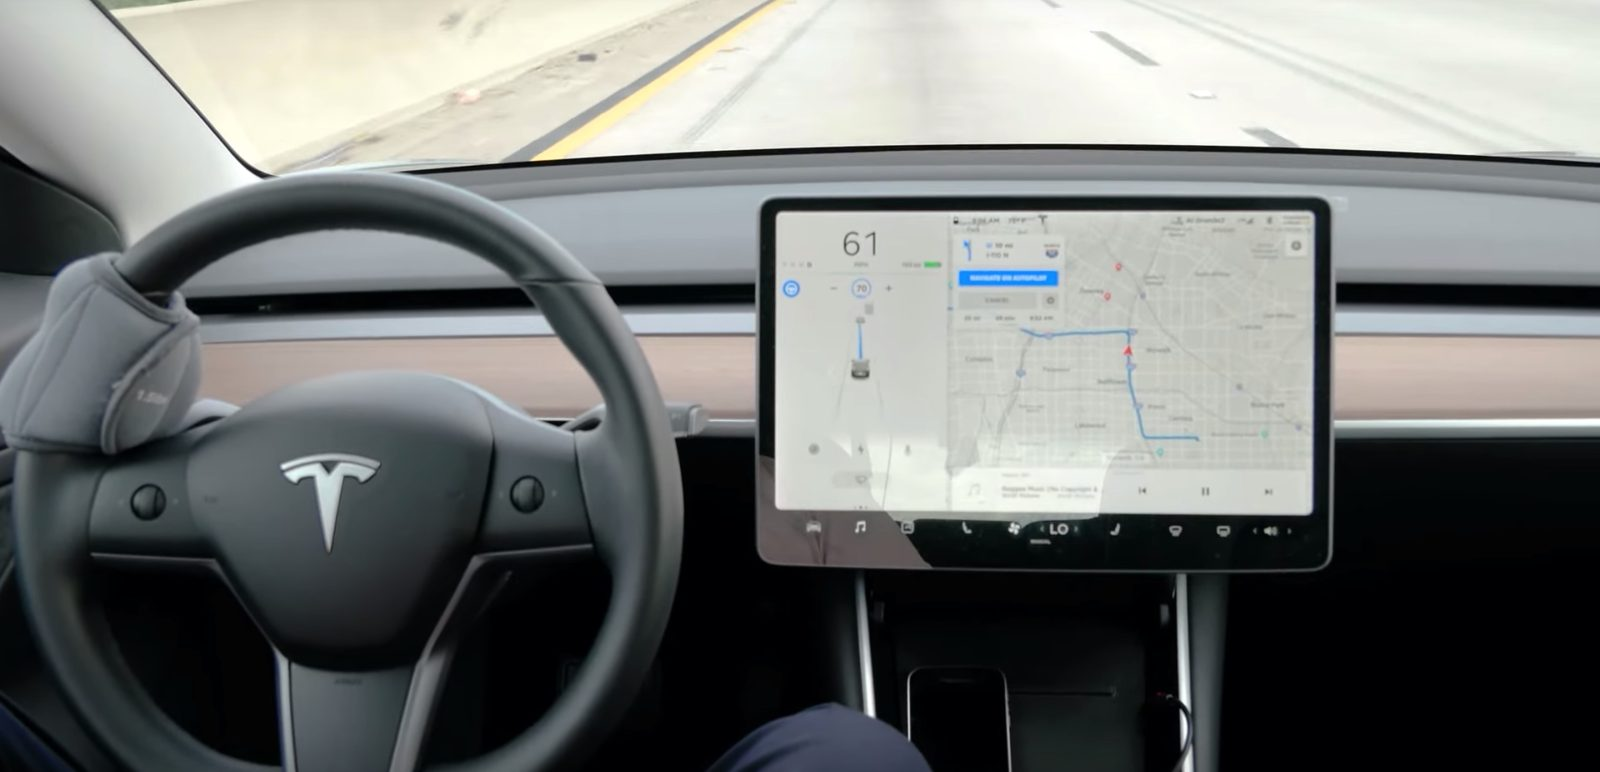 Watch Tesla Autopilot V10 do a 40-min commute on 3 freeways without driver intervention